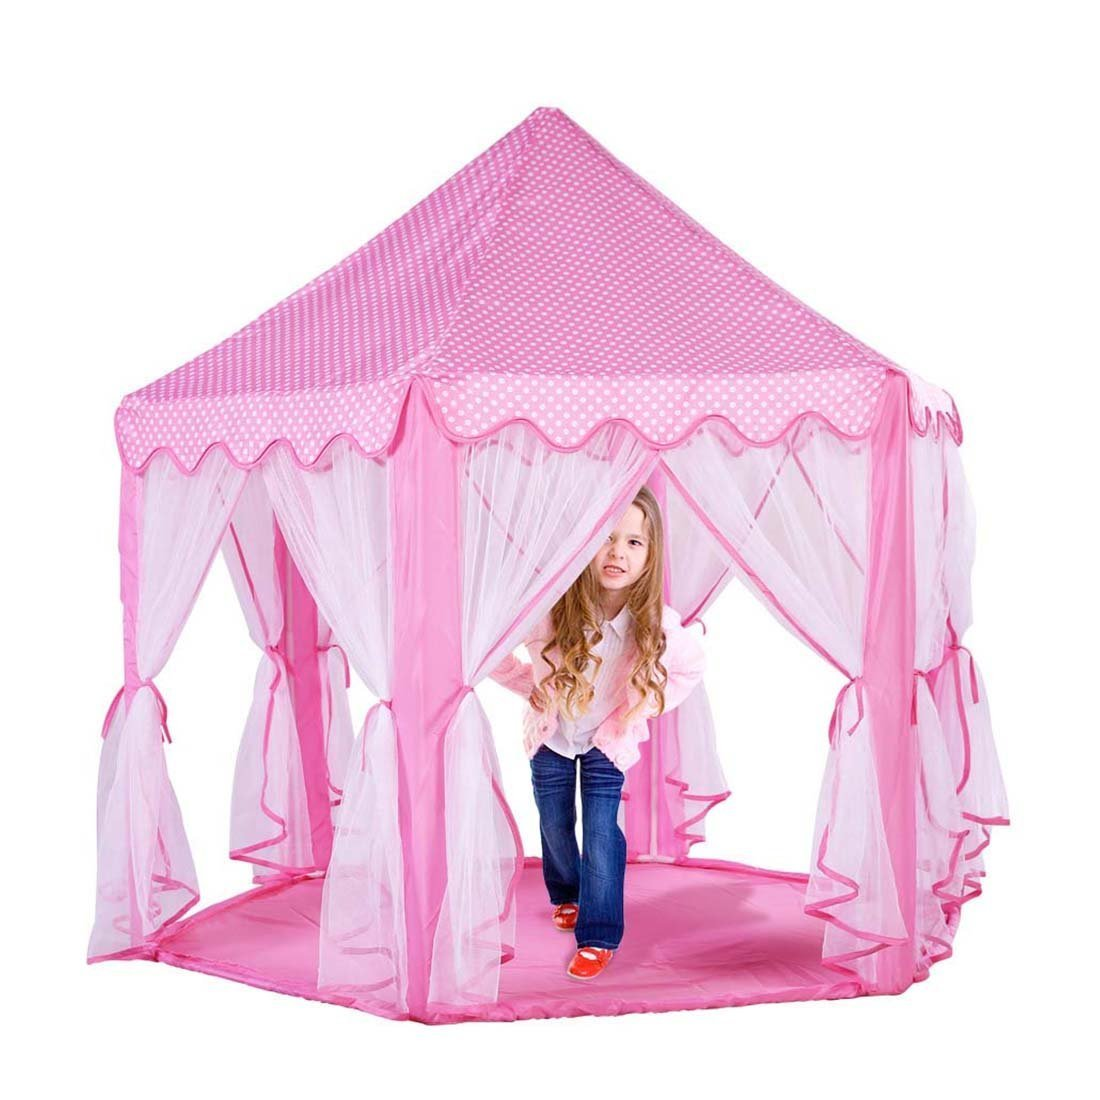 Extra Thick Kids Indoor Princess Castle Play Tents with Beading Decoration,Outdoor Girls Large Playhouse,55''x 53''